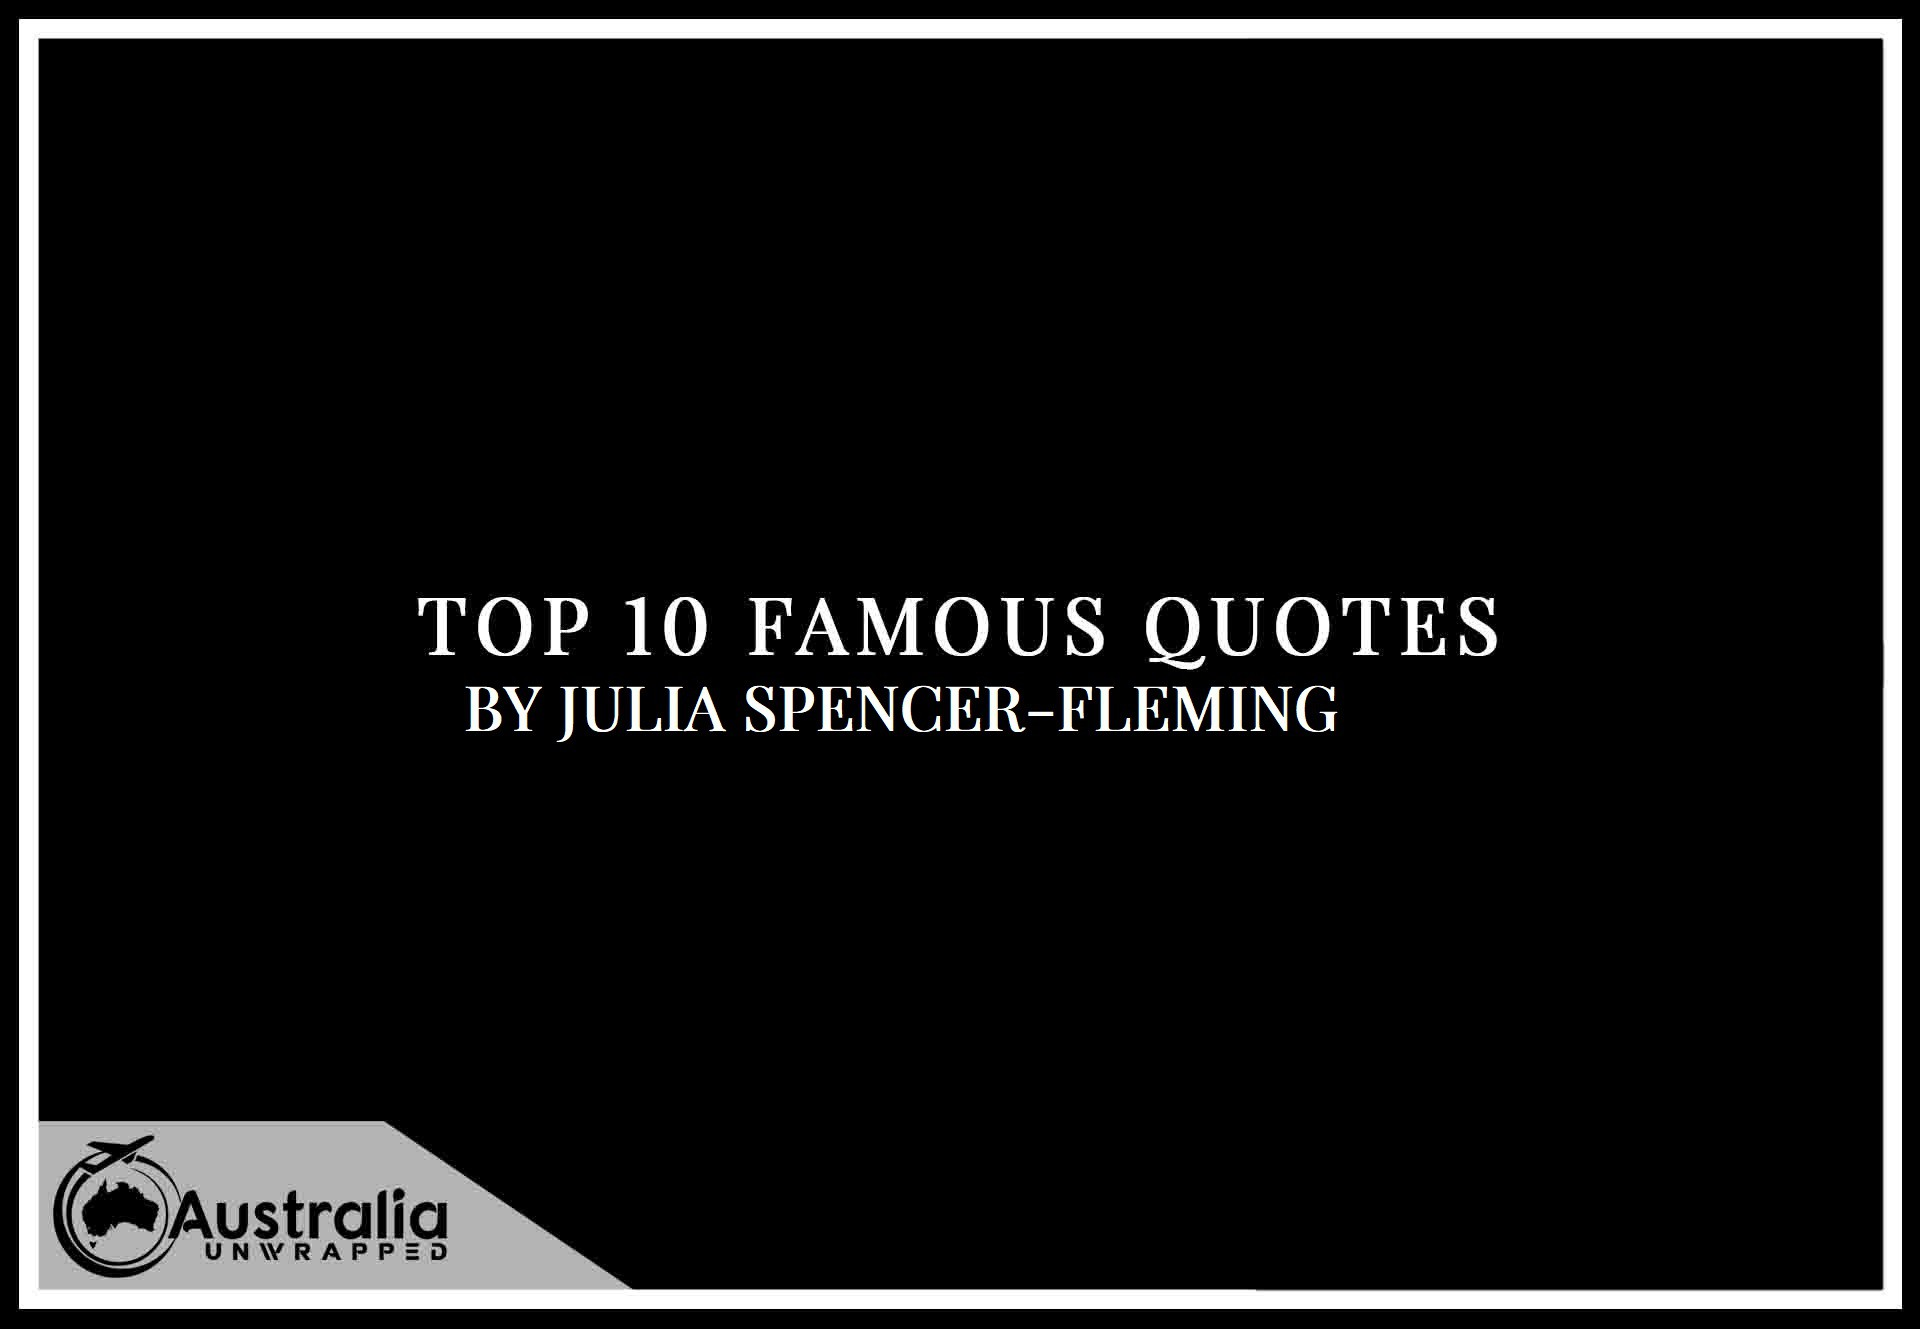 Top 10 Famous Quotes by Author Julia Spencer-Fleming